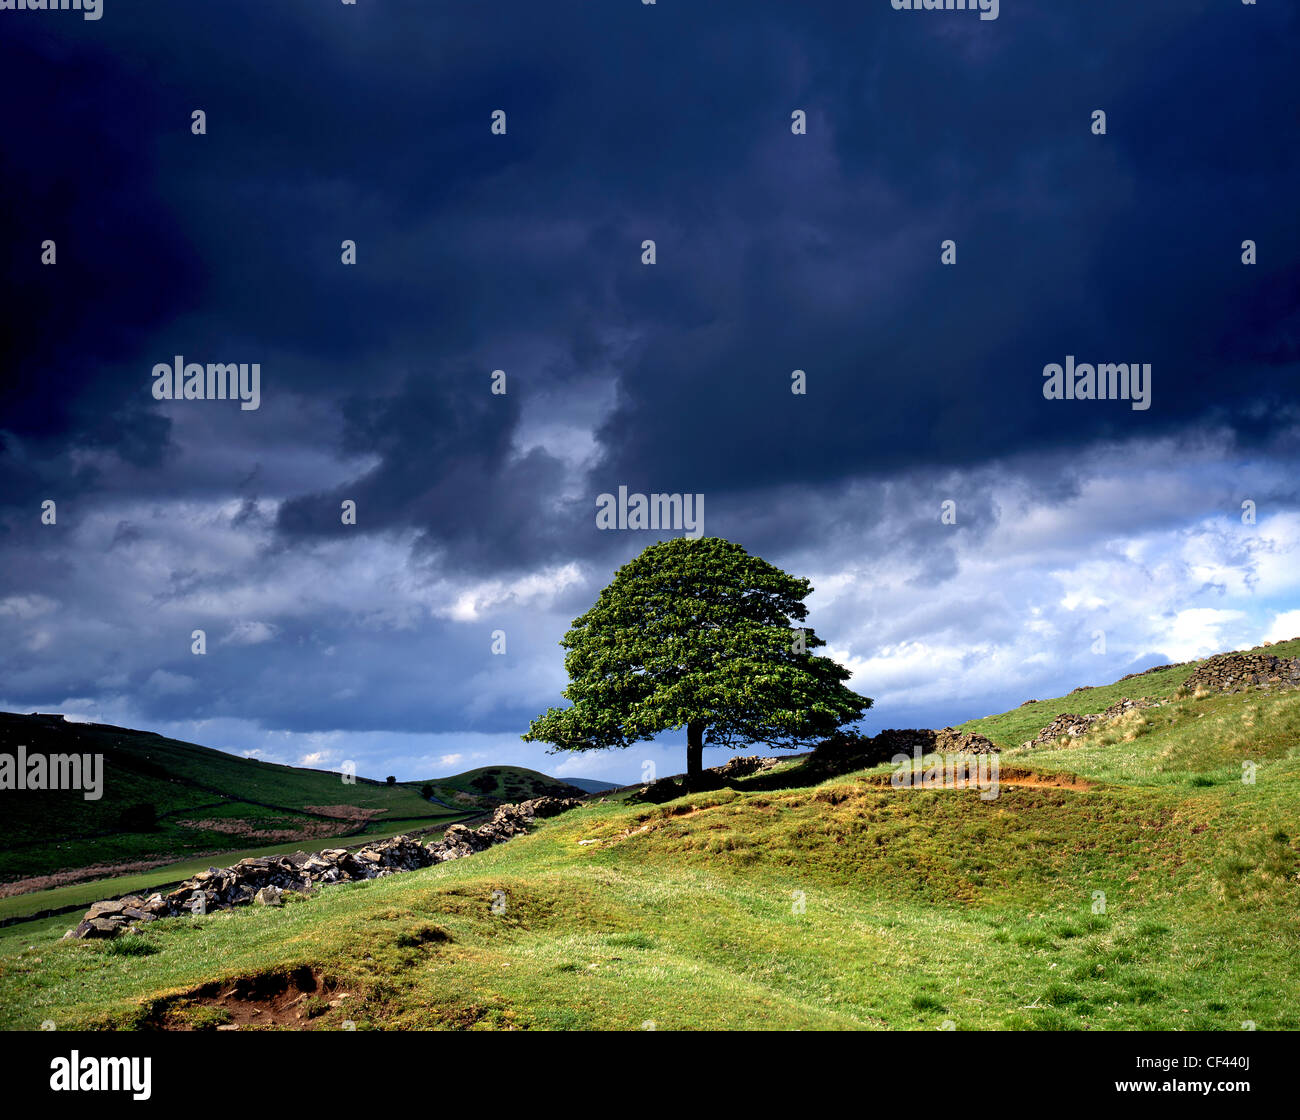 An isolated tree on a hillside in the Goyt Valley against a dark, stormy sky in the Peak District. - Stock Image